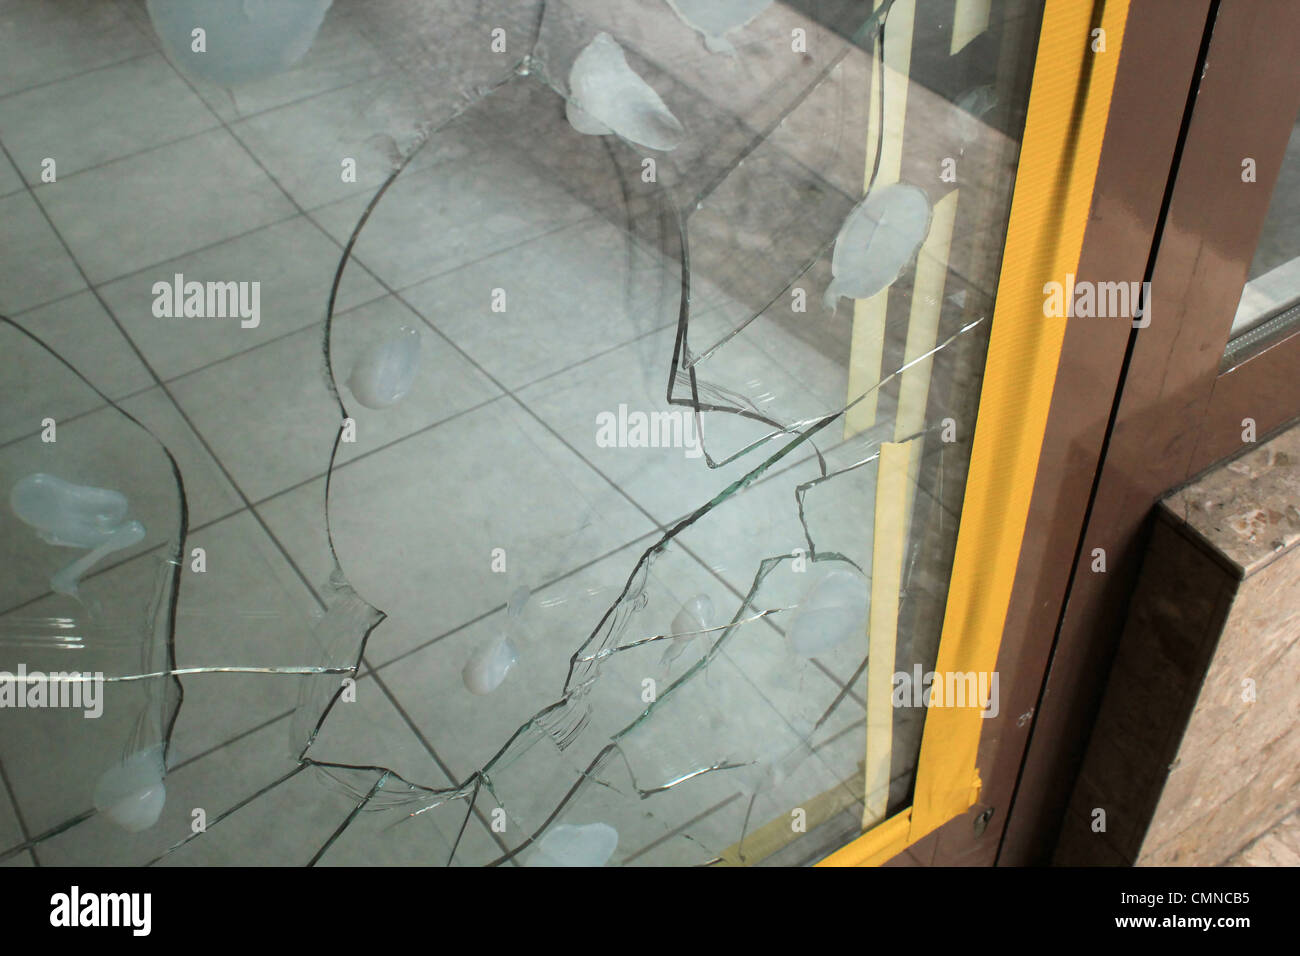 Broken glass of the entrance of a shop - Stock Image